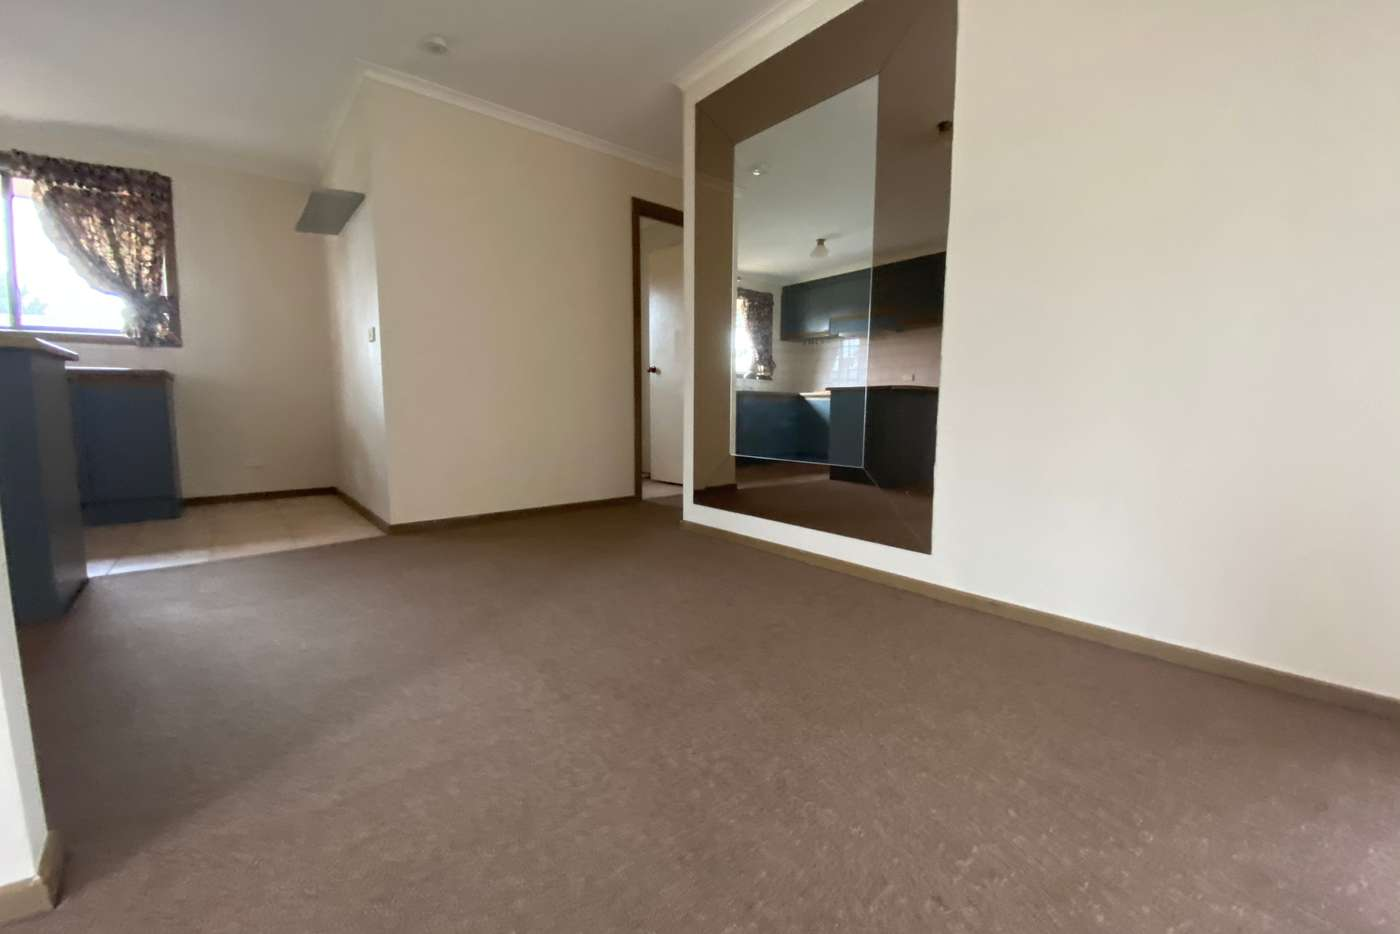 Sixth view of Homely house listing, 30 Gentzen Drive, Wyndham Vale VIC 3024